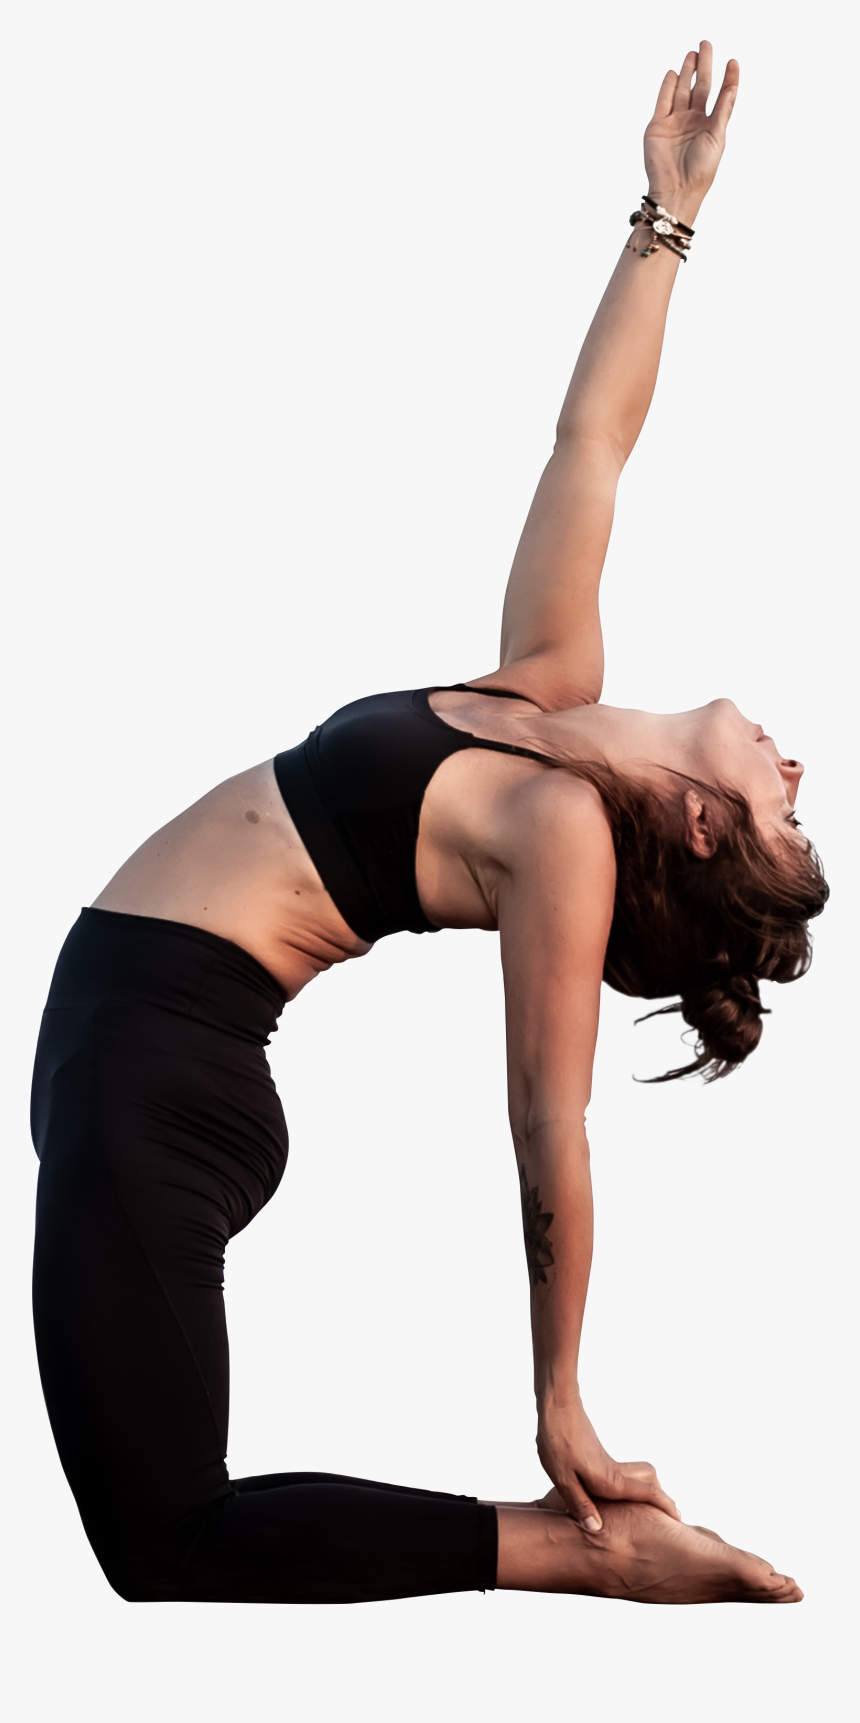 Yoga Poses For Photography Hd Png Download Kindpng